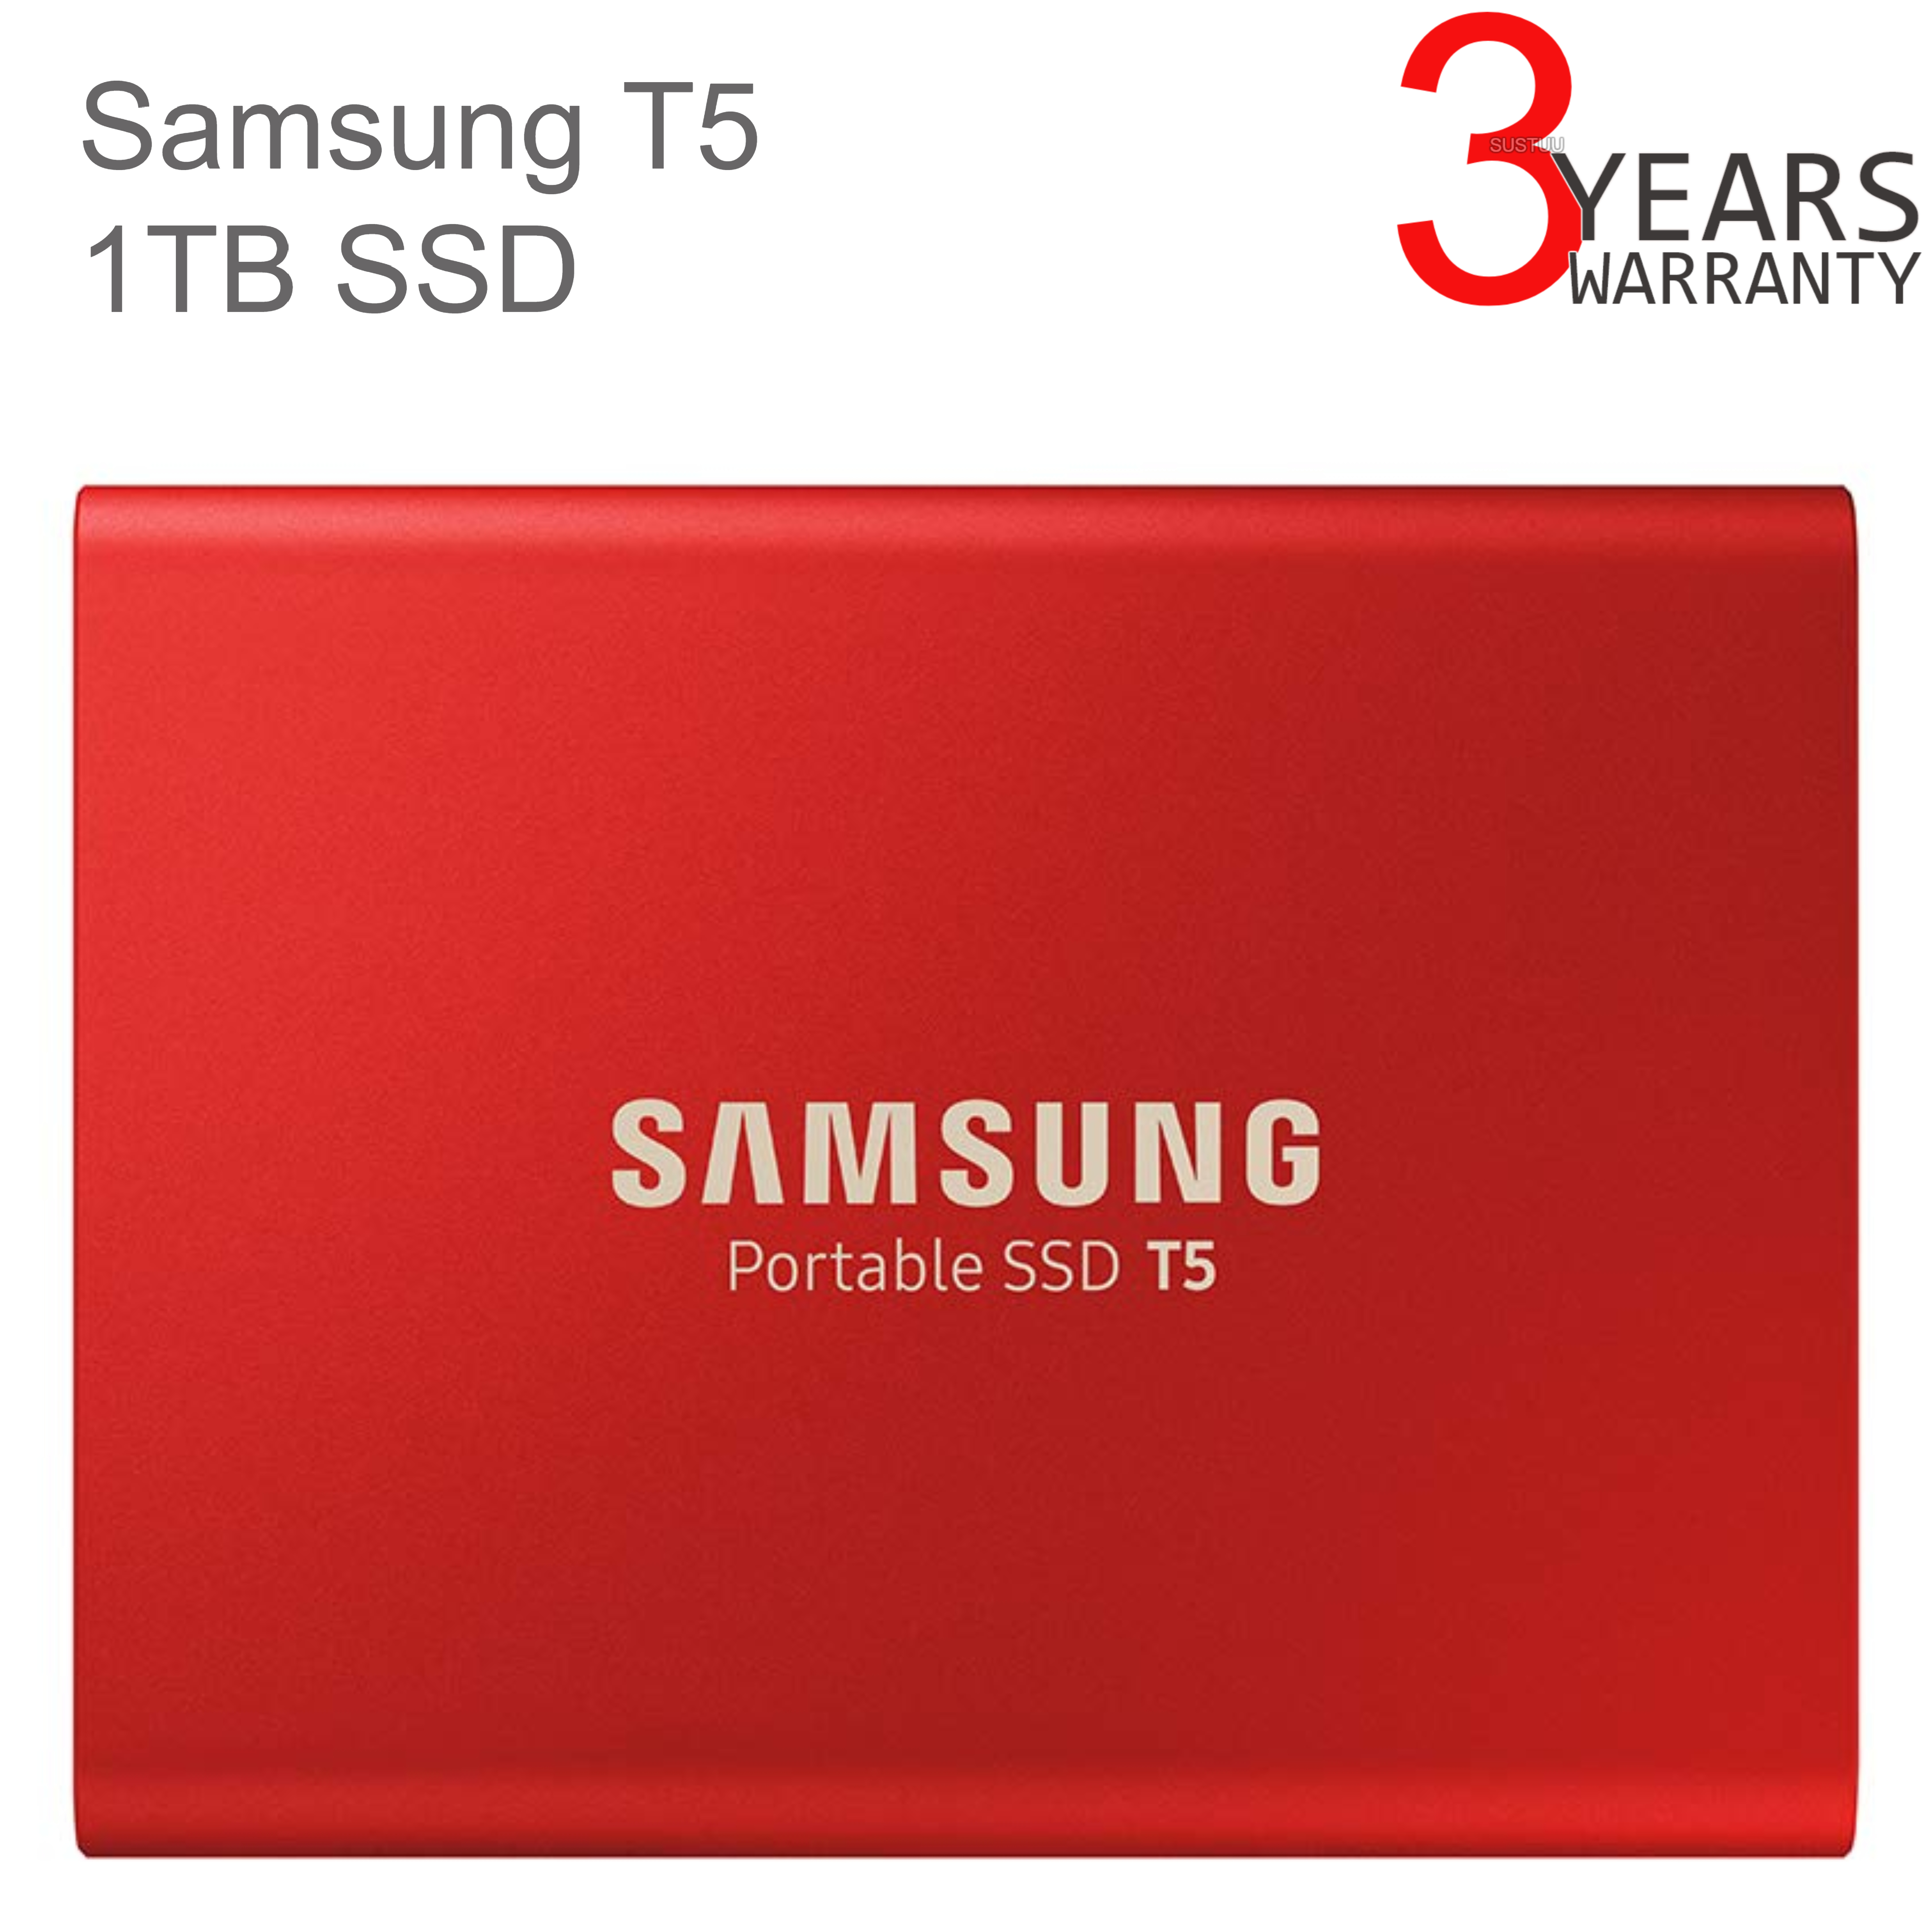 Samsung T5 1TB USB 3.1 Type-C Portable External SSD | Solid State Drive | For Desktops & Laptops | Red